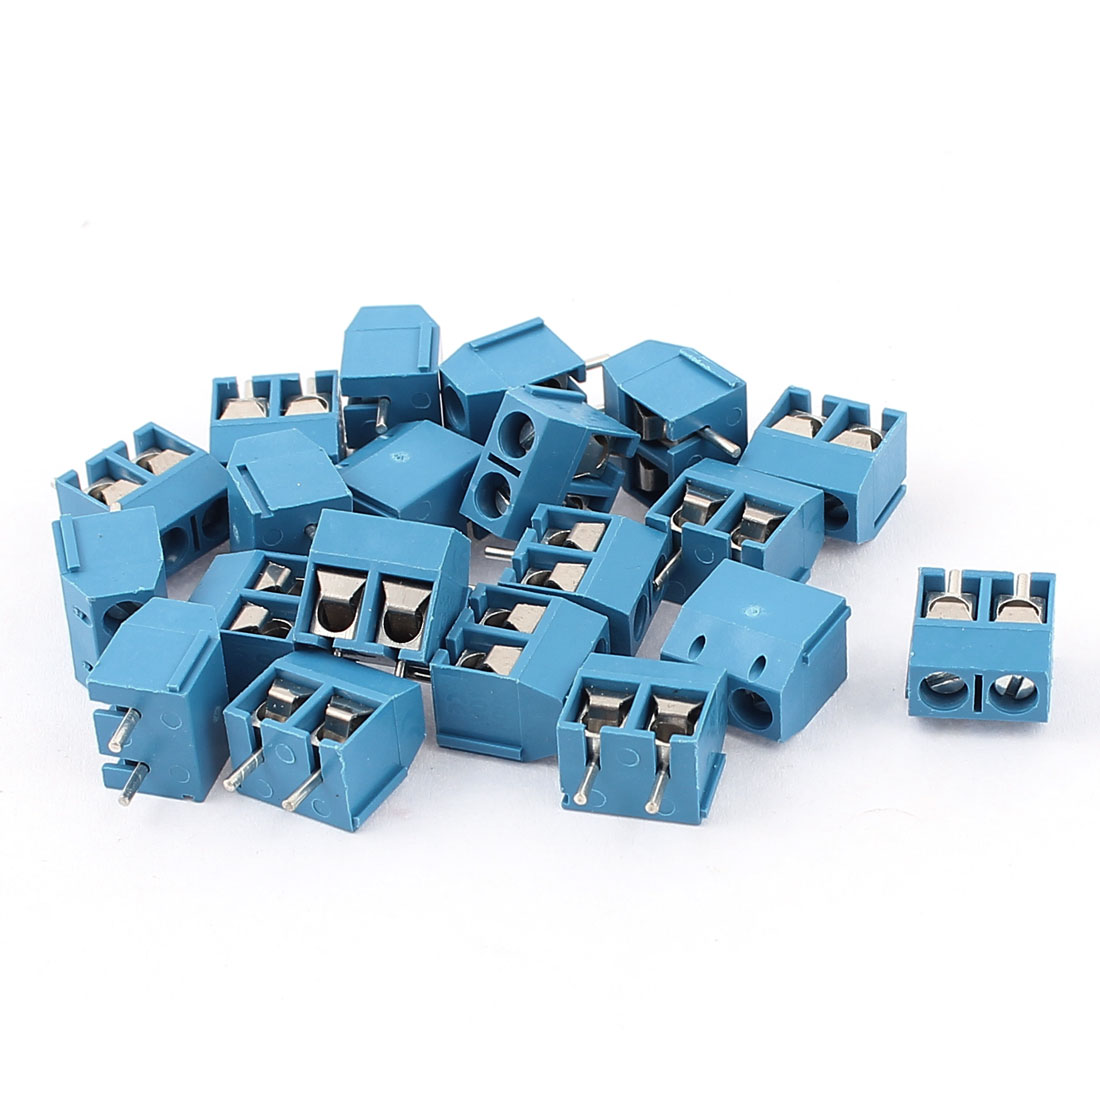 20Pcs AC 300V 10A PCB Terminal Block Connector 5.0mm Pitch Blue